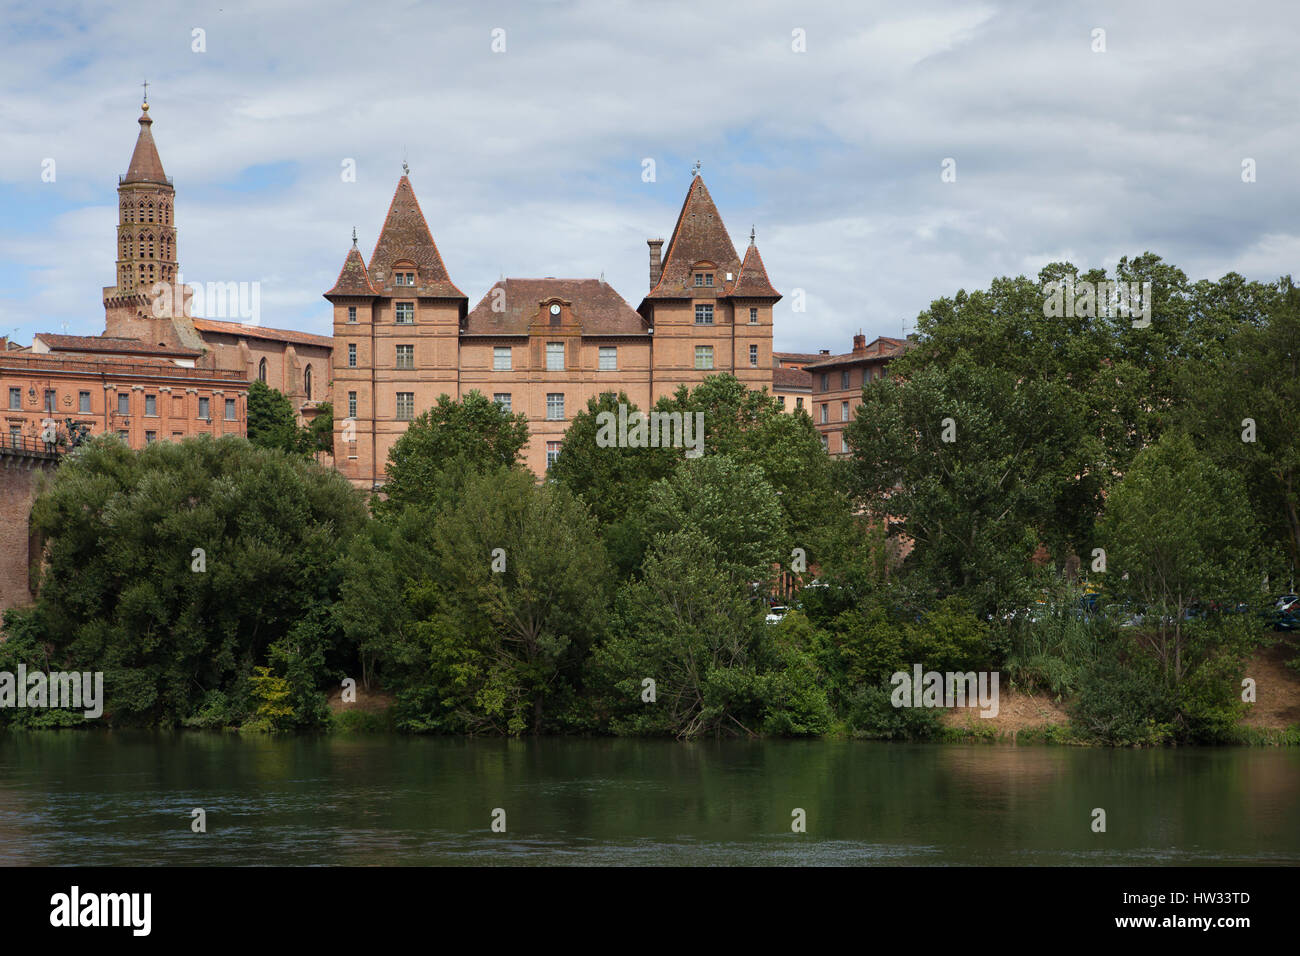 Musee Ingres on the riverbank of the Tarn River in Montauban, Tarn-et-Garonne, France. Saint James' Church (Eglise - Stock Image